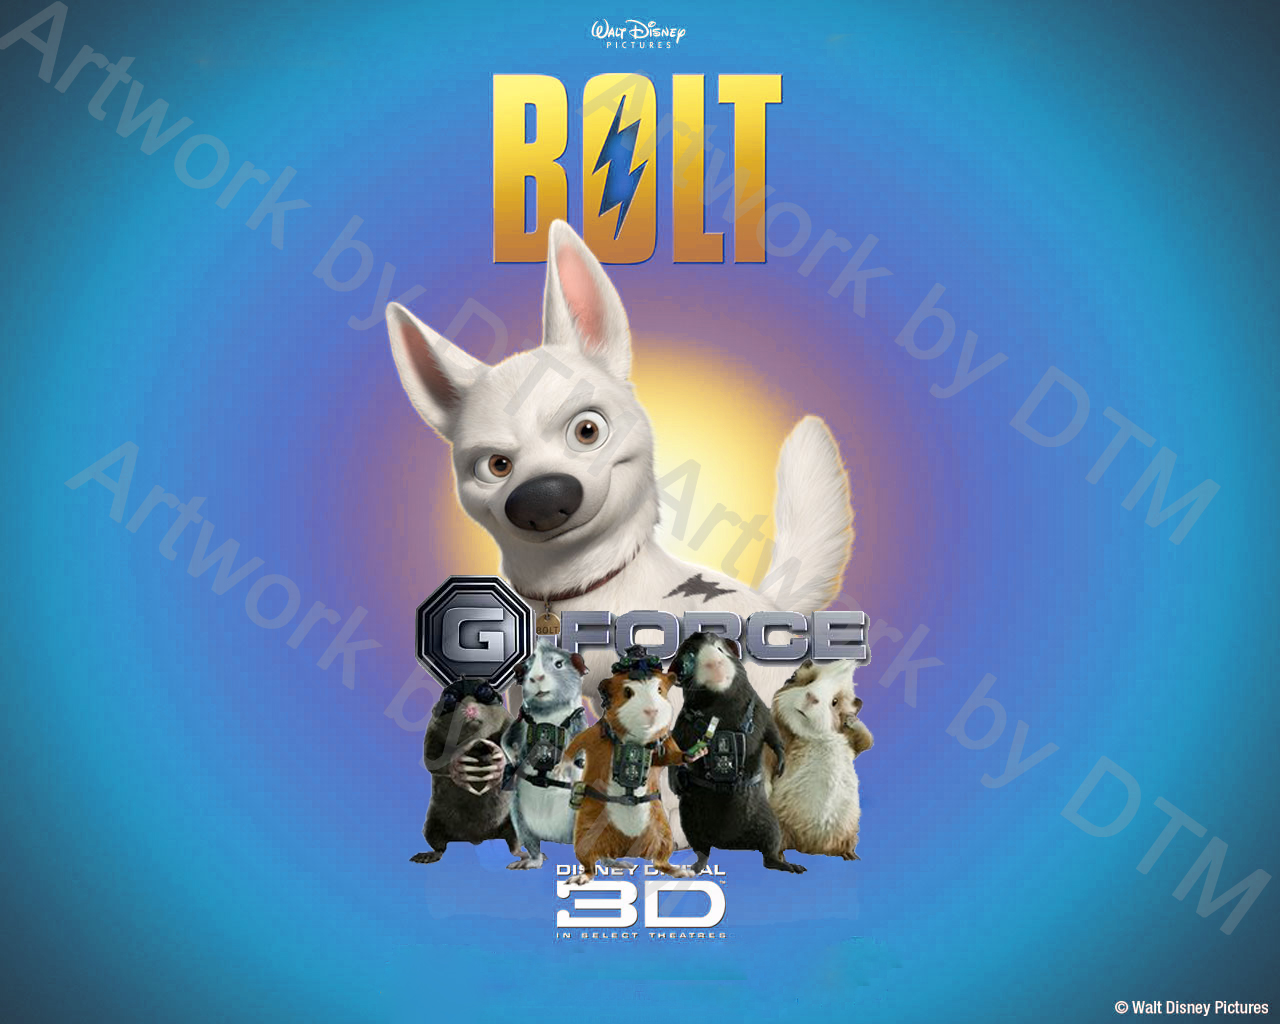 Bolt And G Force Wallpaper By Digimontamermaster On Deviantart HD Wallpapers Download Free Images Wallpaper [1000image.com]